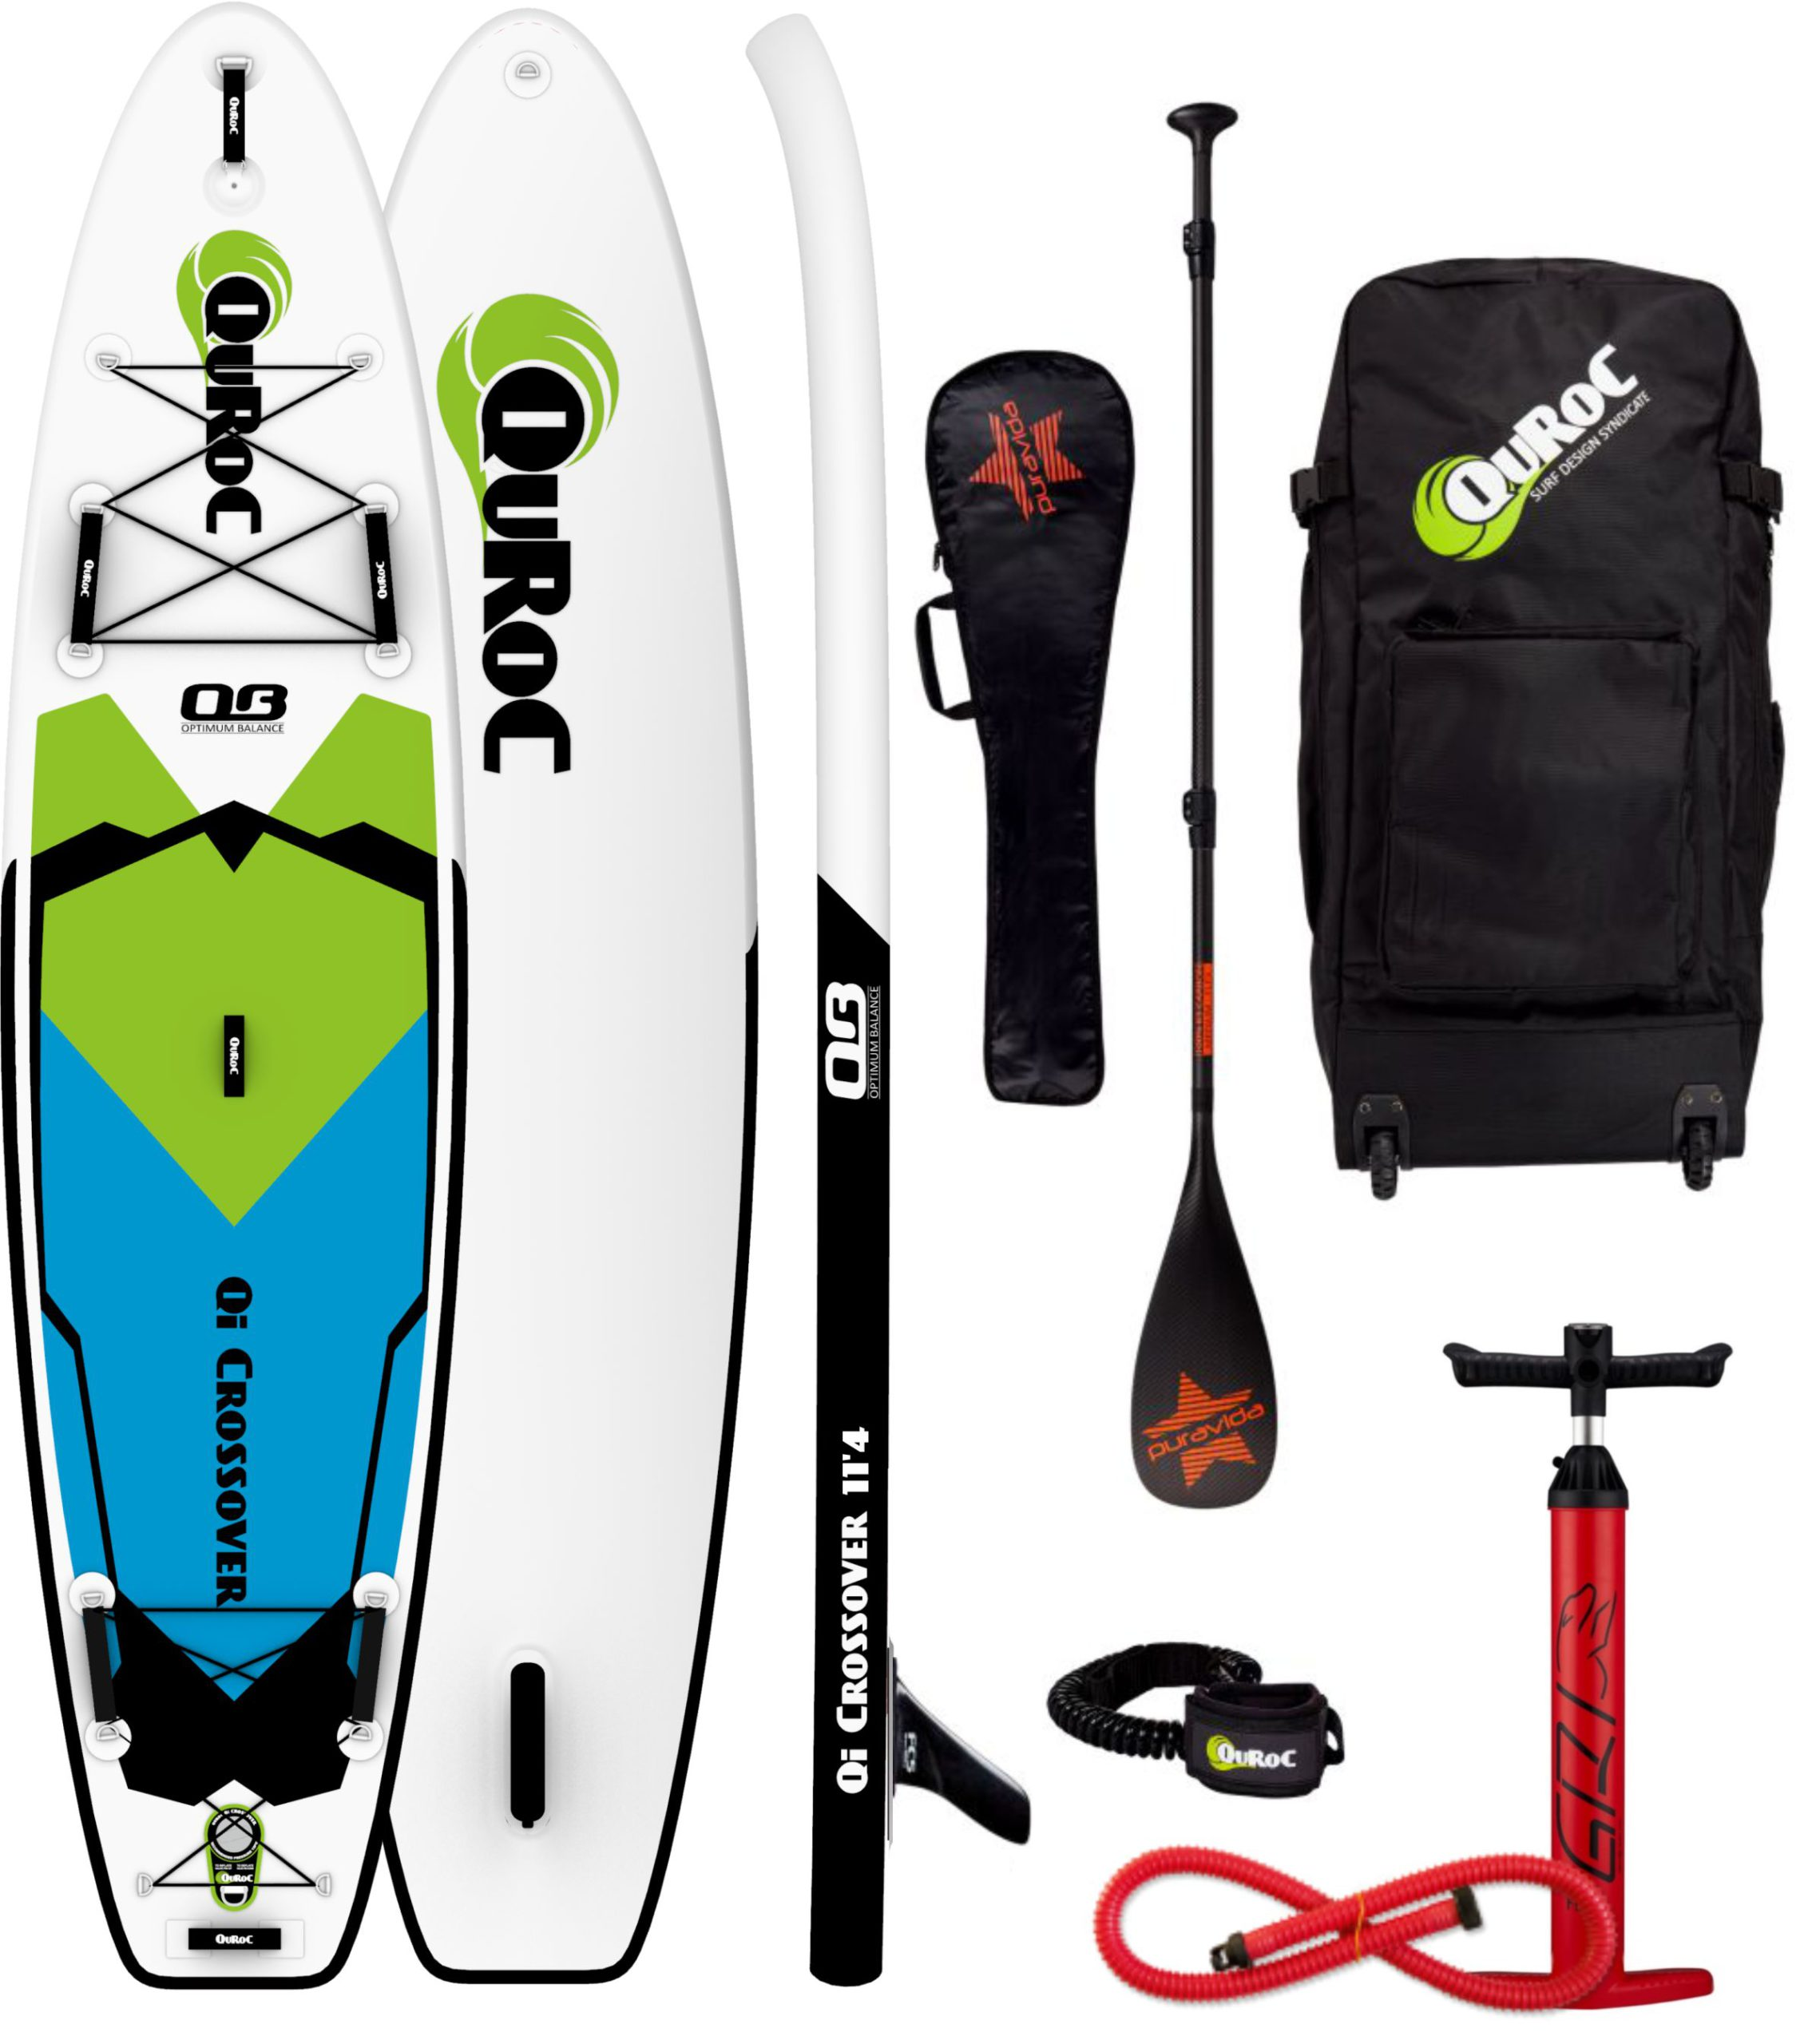 Quroc Crossover 11 4 Paddle Board Package